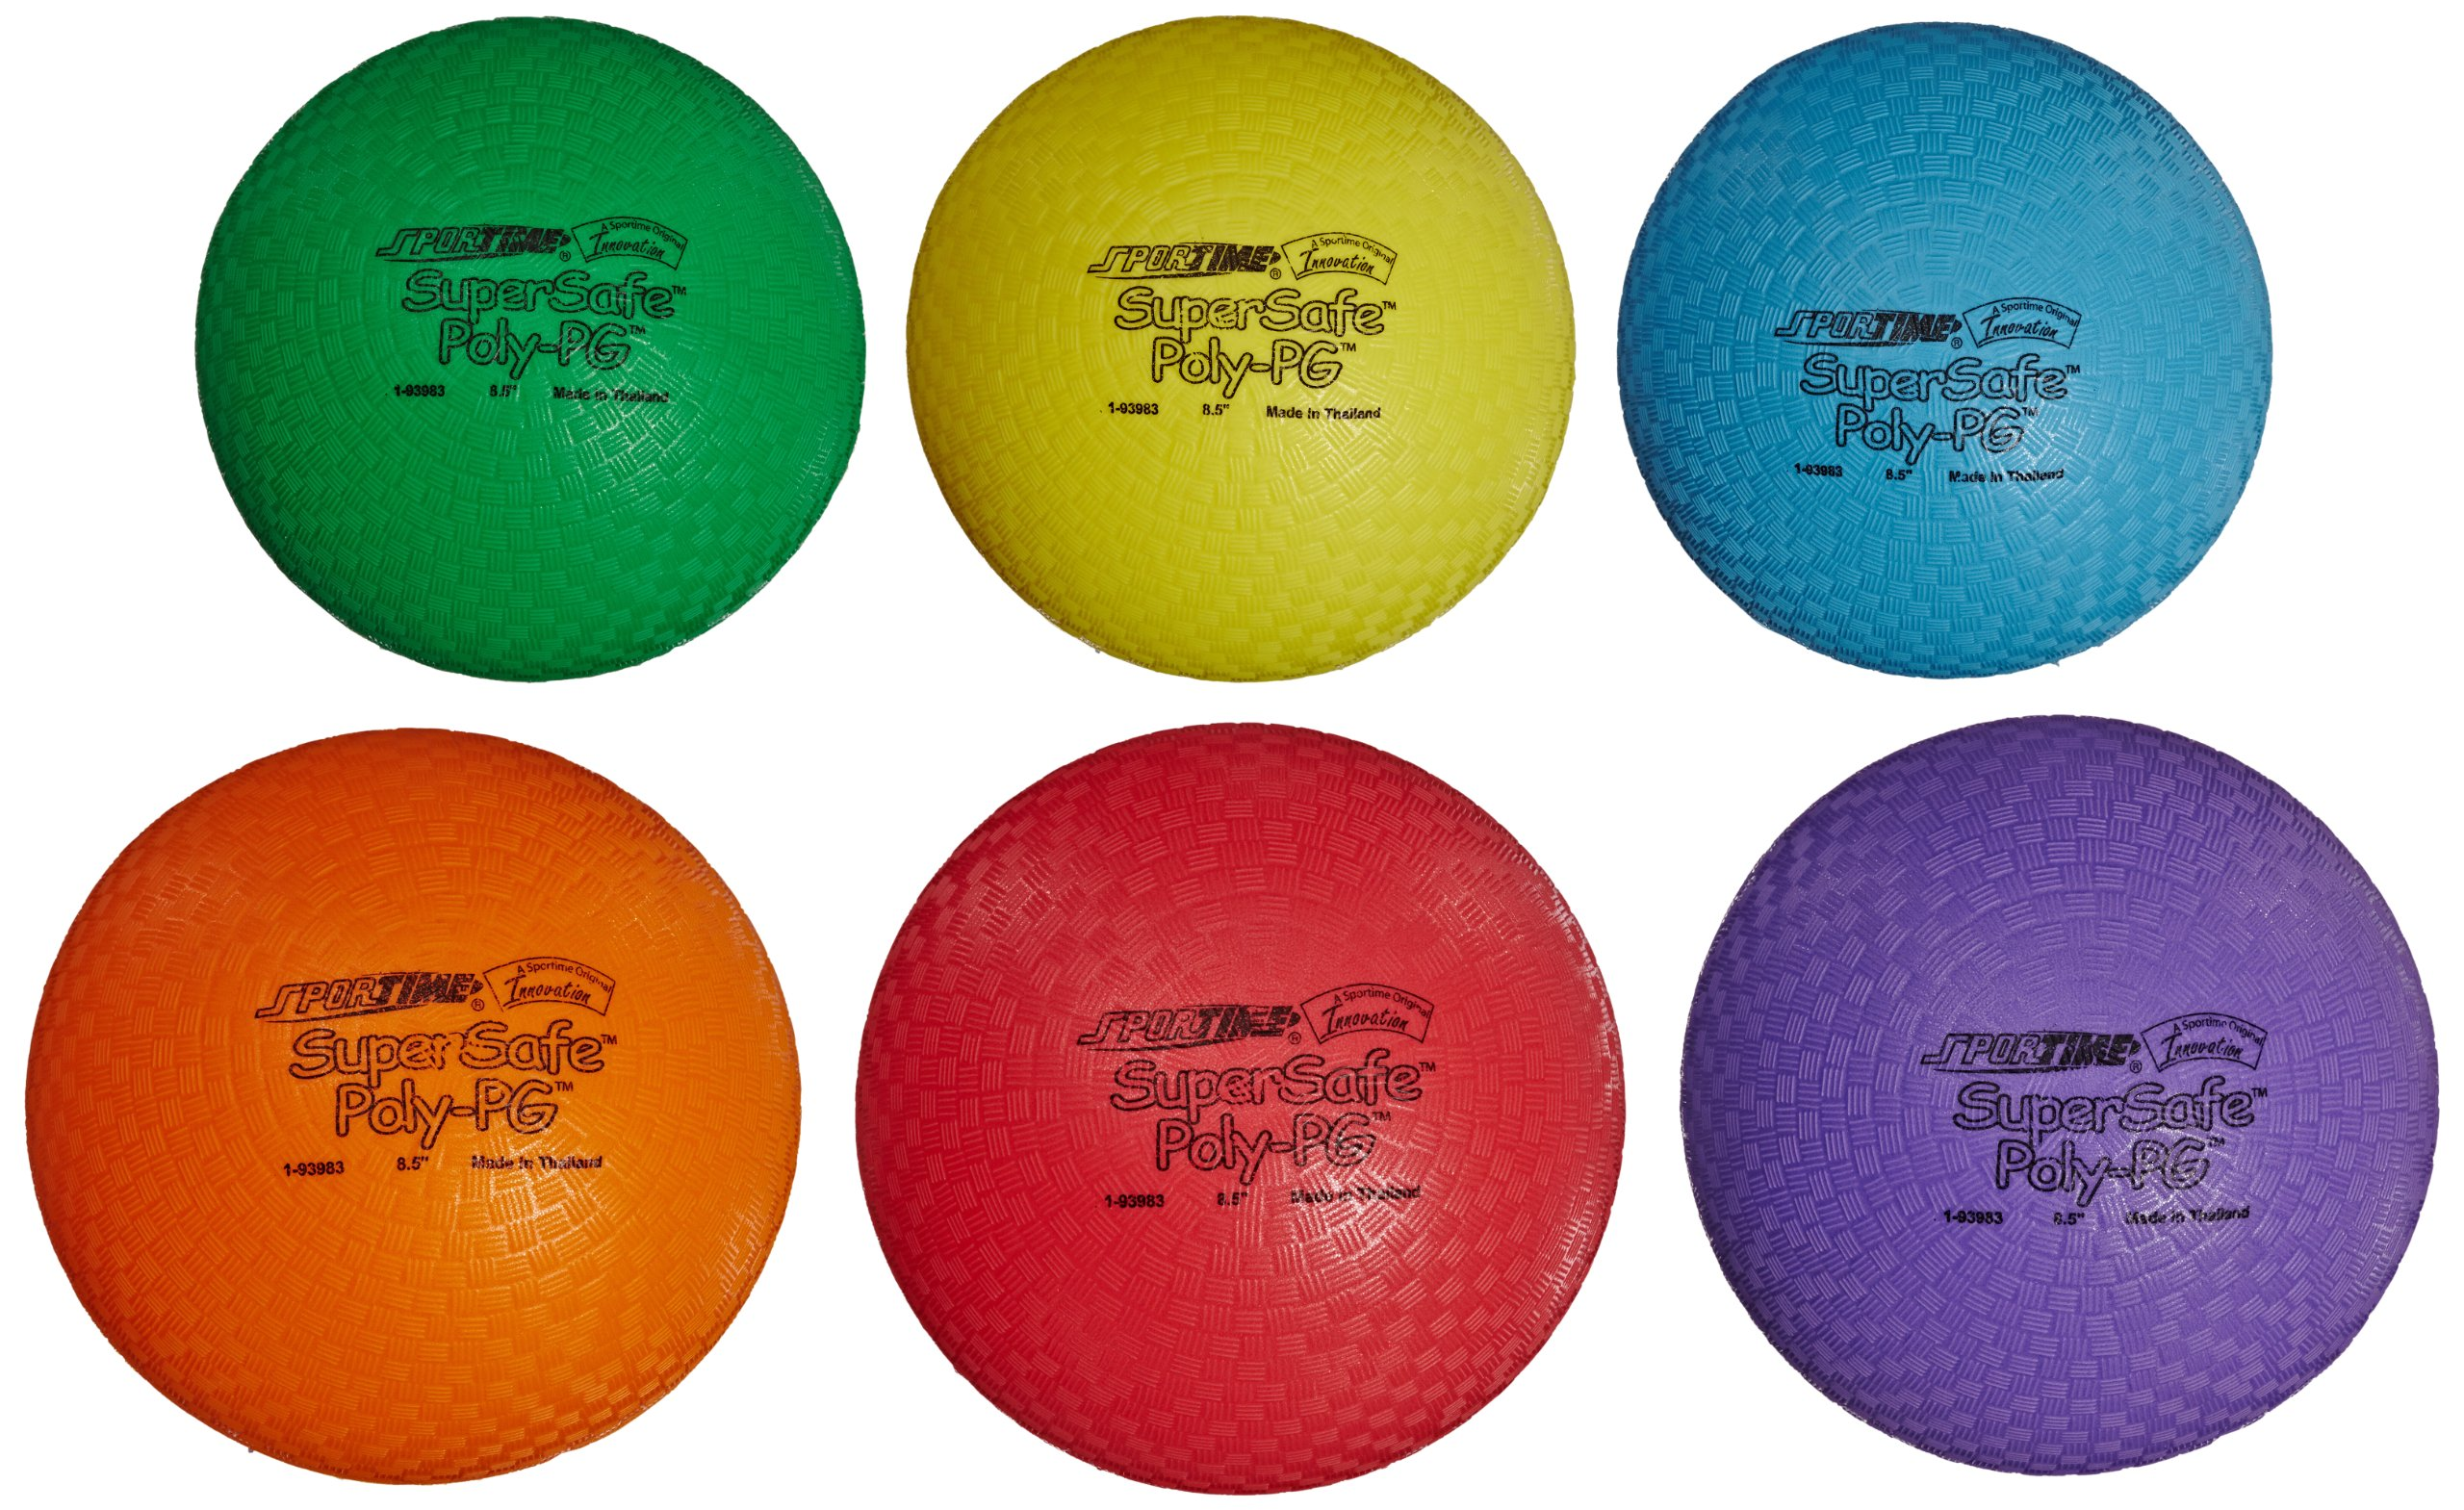 Sportime Supersafe Balls, 8-1/2 Inches, Assorted Colors, Set of 6 by Sportime